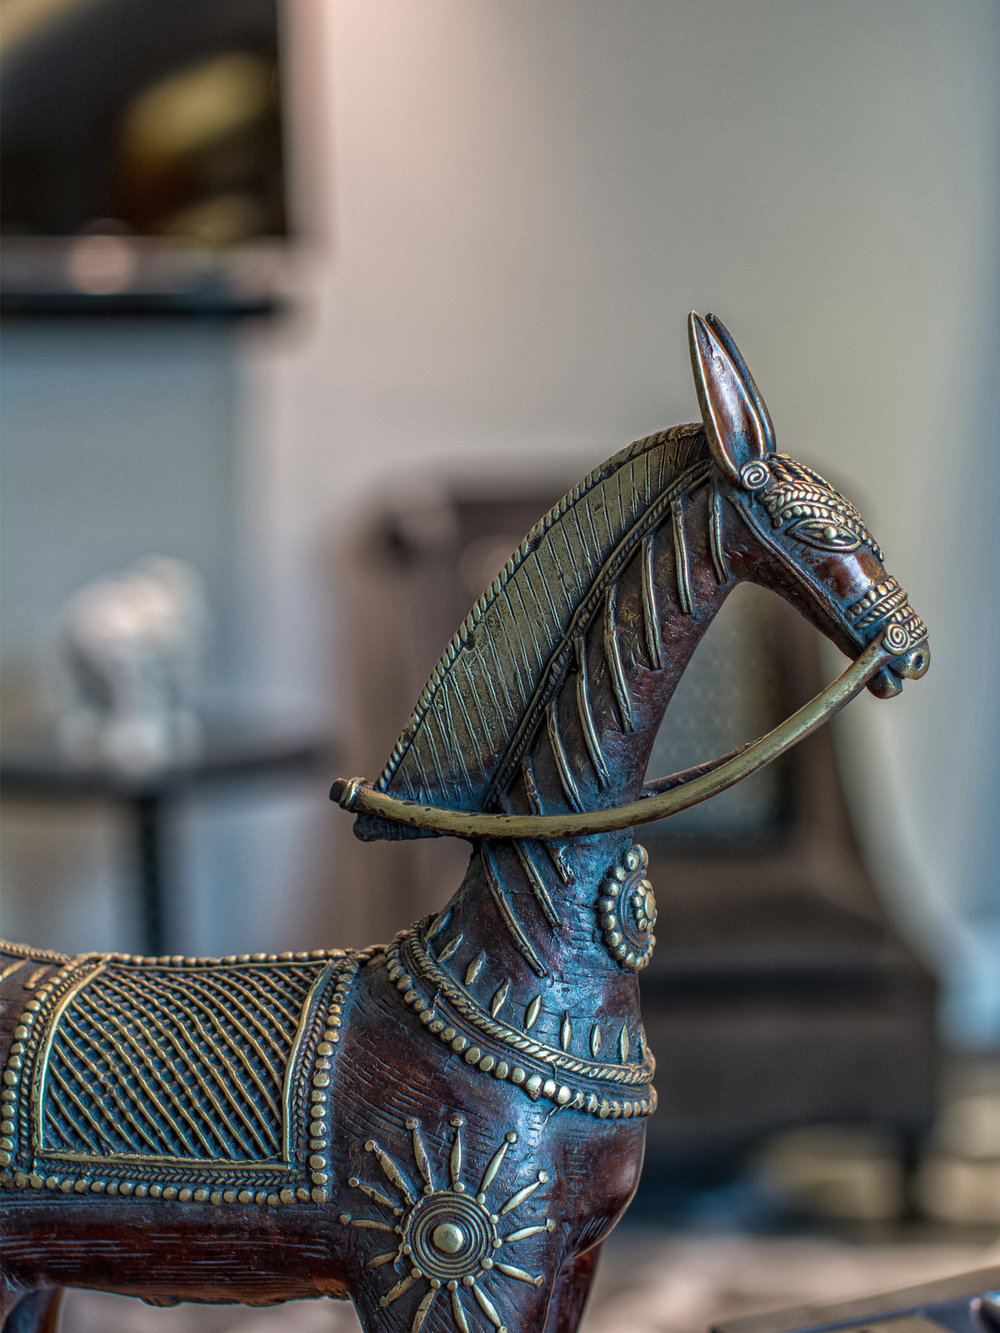 09-capsule-arts-projects-taj-hotel-downtown-horse.jpg